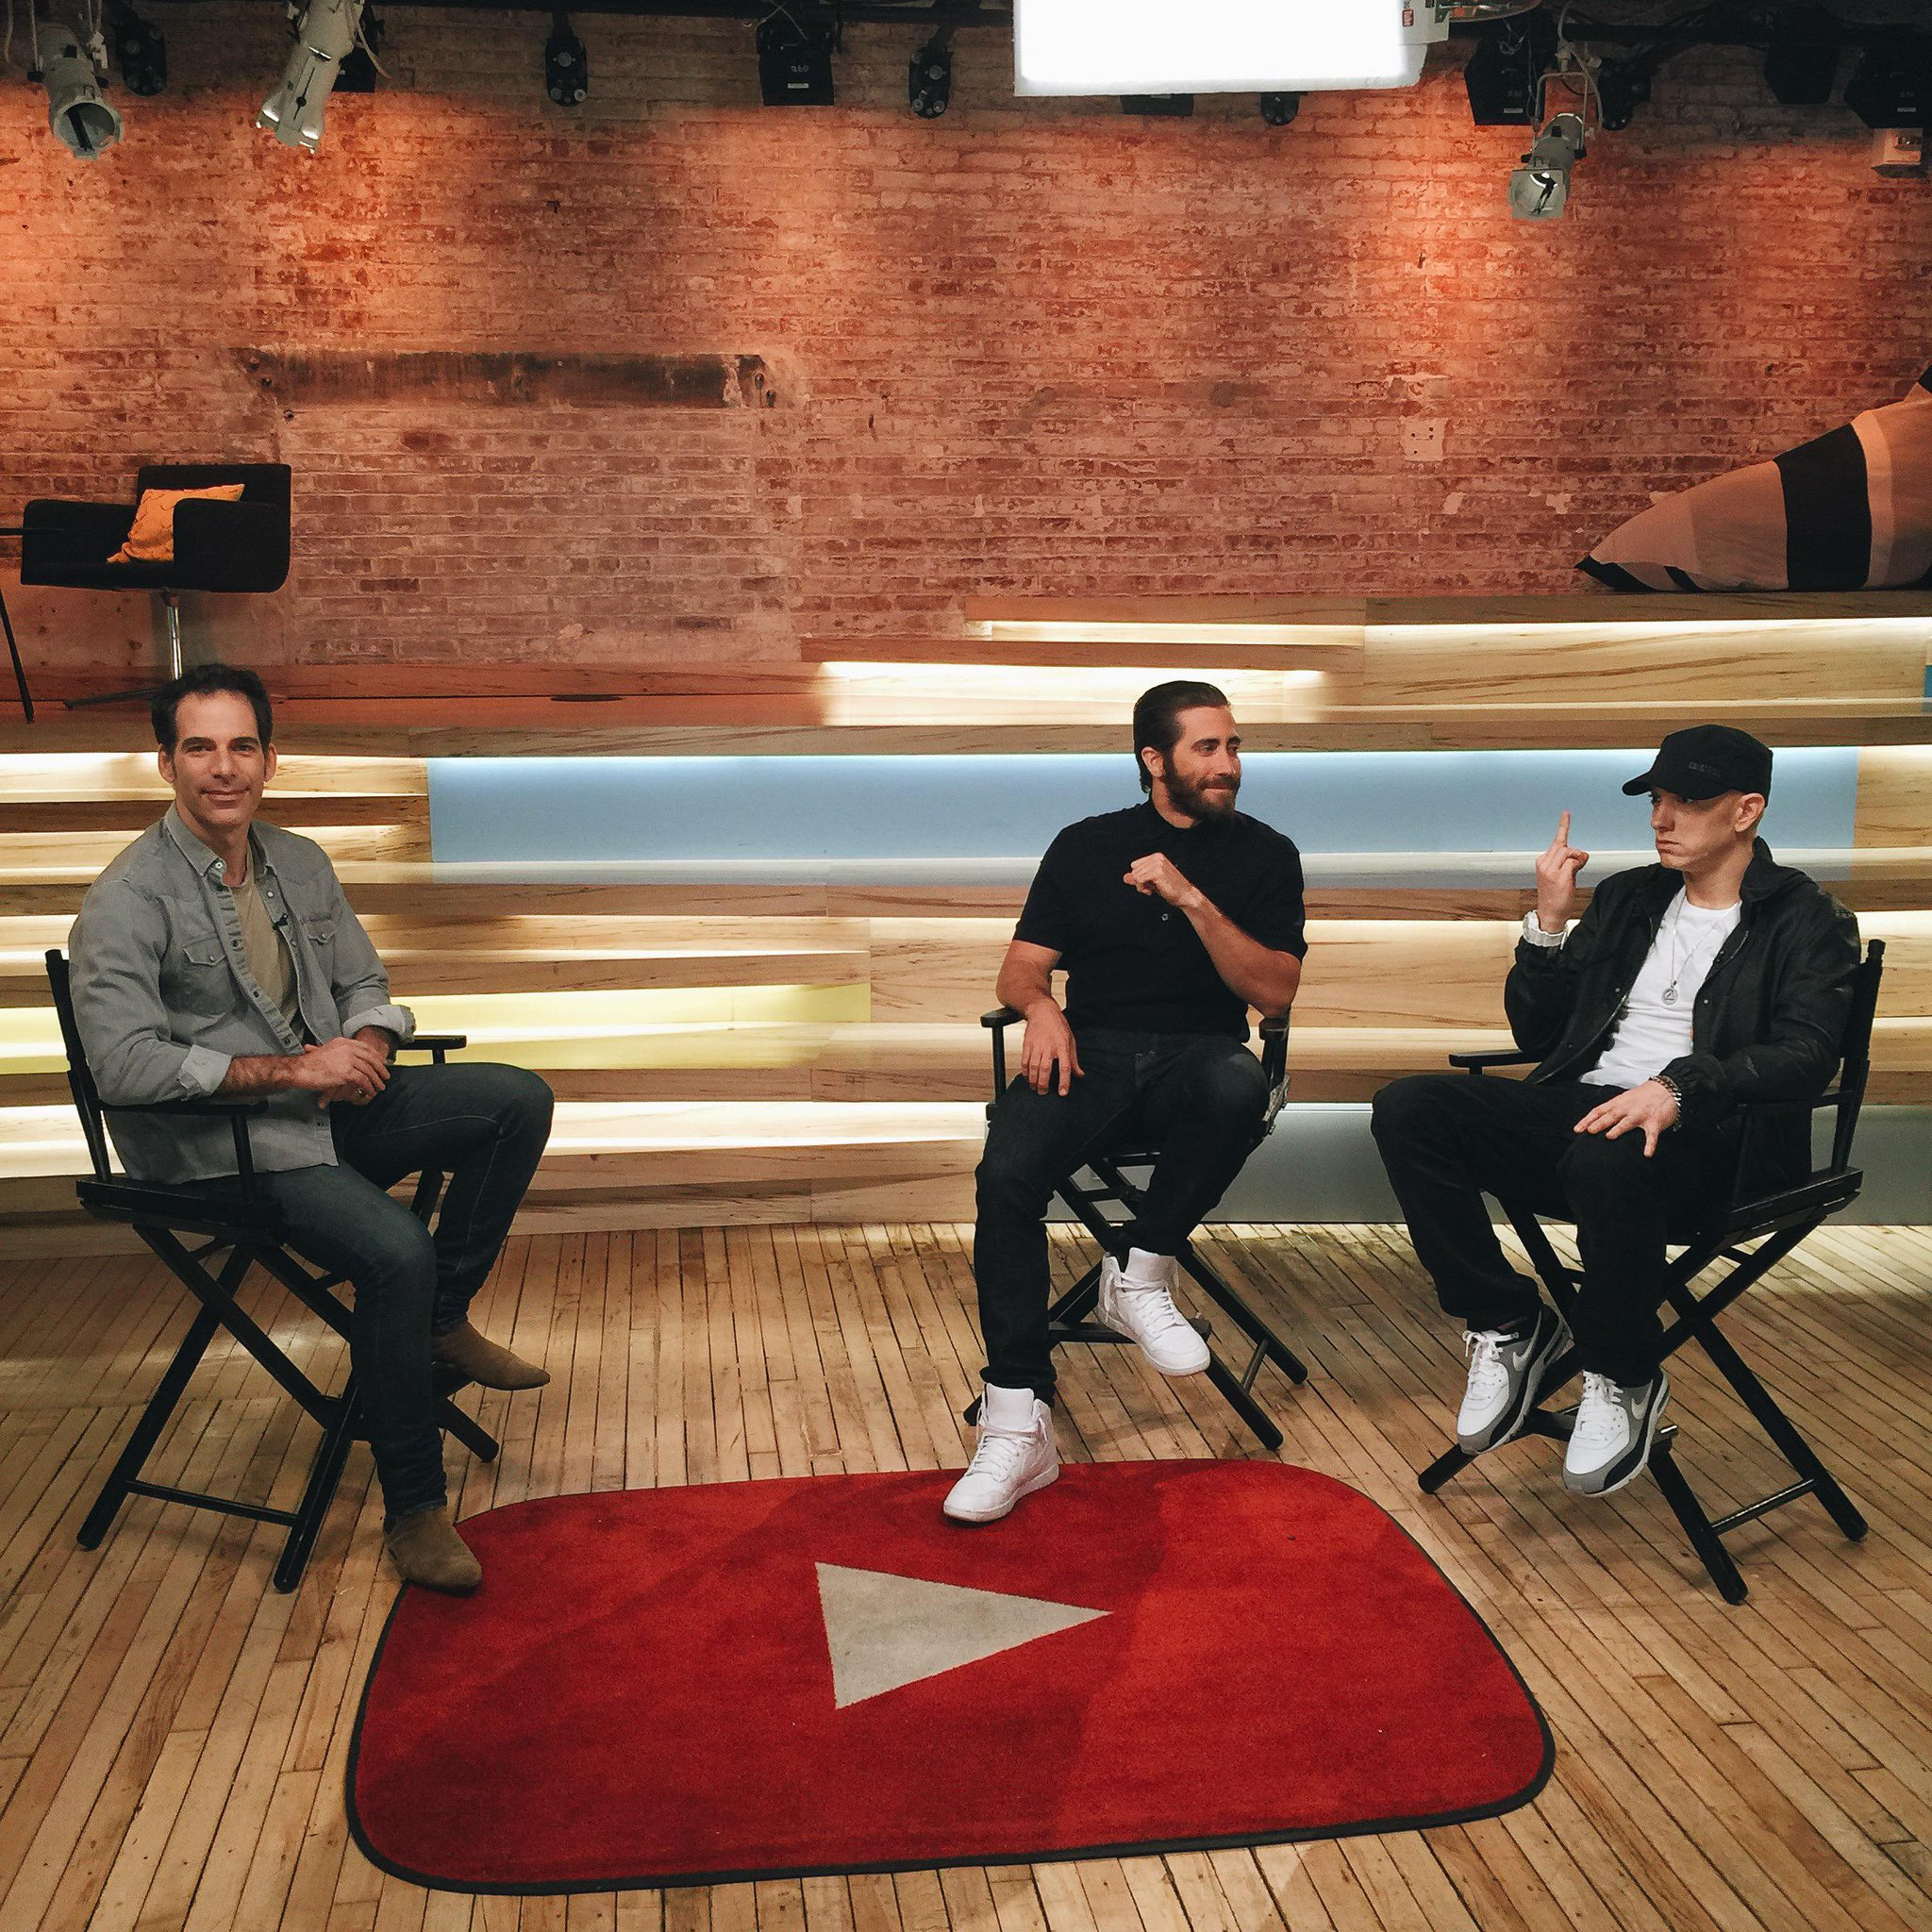 Me + Jake getting ready with Joe Levy for the #Southpaw sessions live tomorrow at the @Youtube Space in NYC. http://t.co/54NzRqWRhv